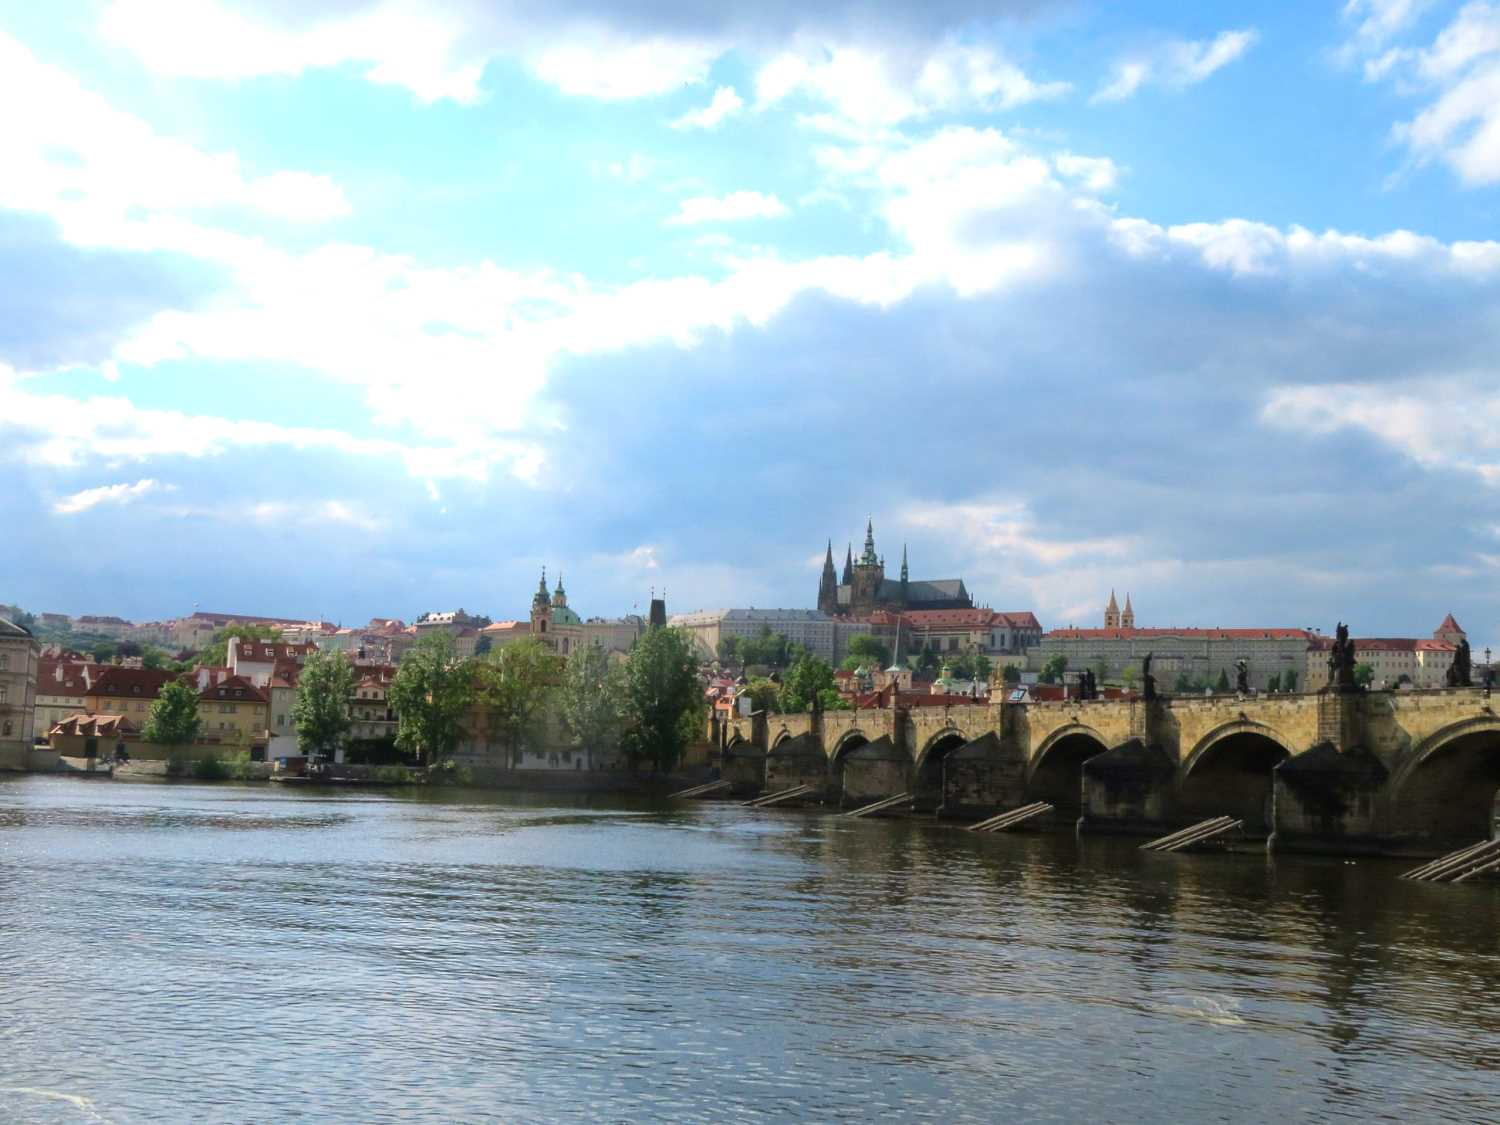 , Prague's Smetanovo nábřeží will be closed to cars for the summer to create a pedestrian zone, Expats.cz Latest News & Articles - Prague and the Czech Republic, Expats.cz Latest News & Articles - Prague and the Czech Republic